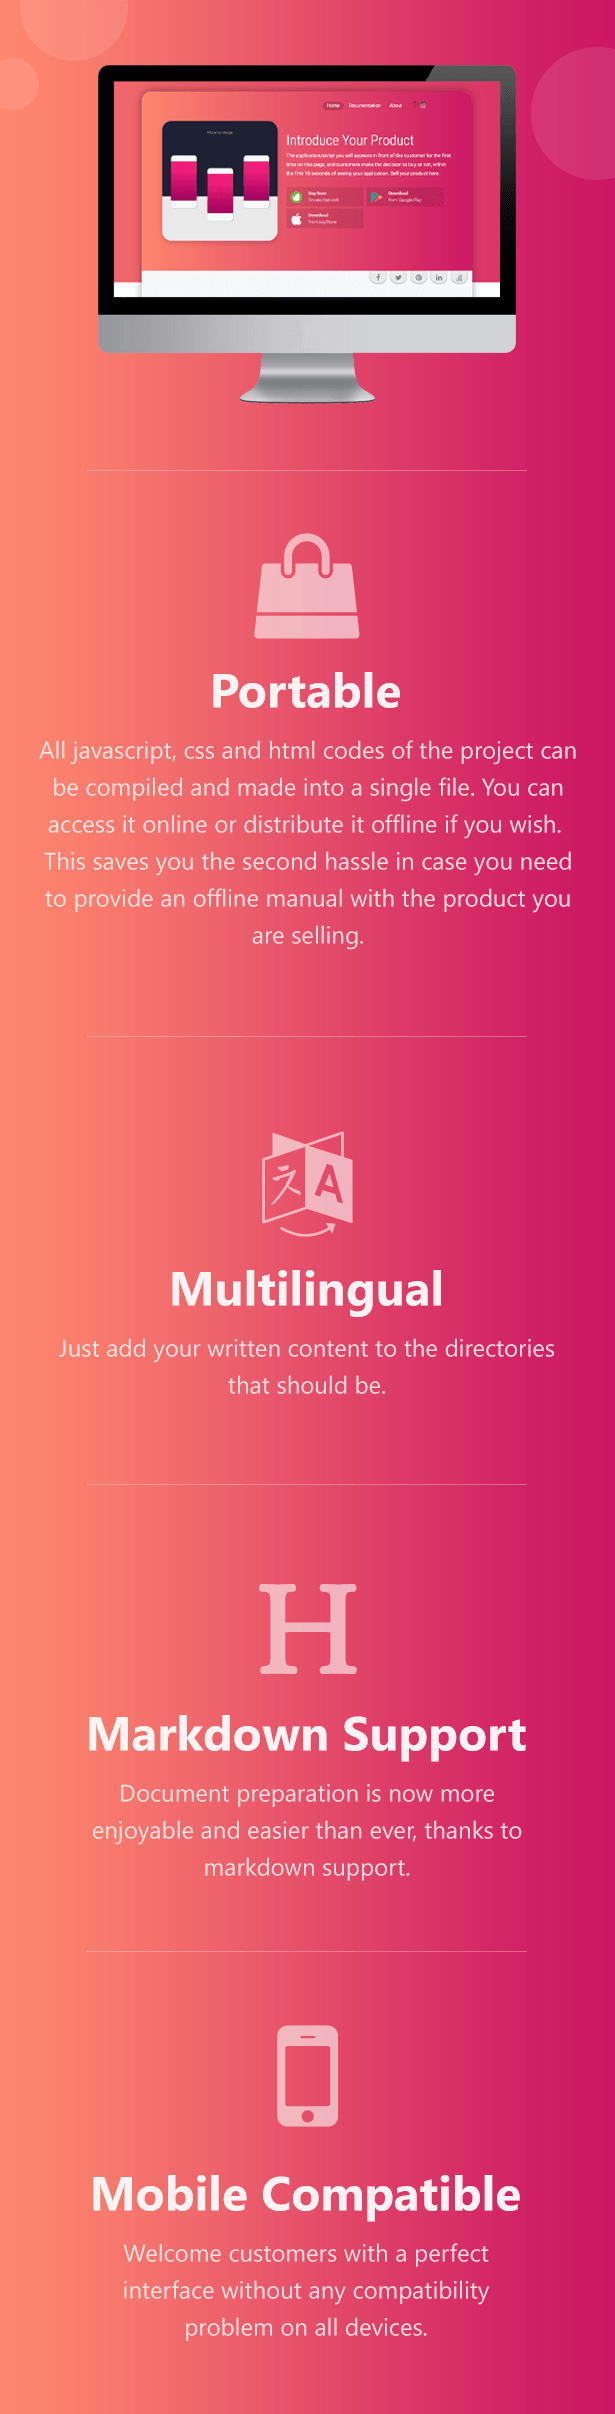 MarketPlace is a portable, multilingual, markdown supported, mobile compatible product/software introducing solution.